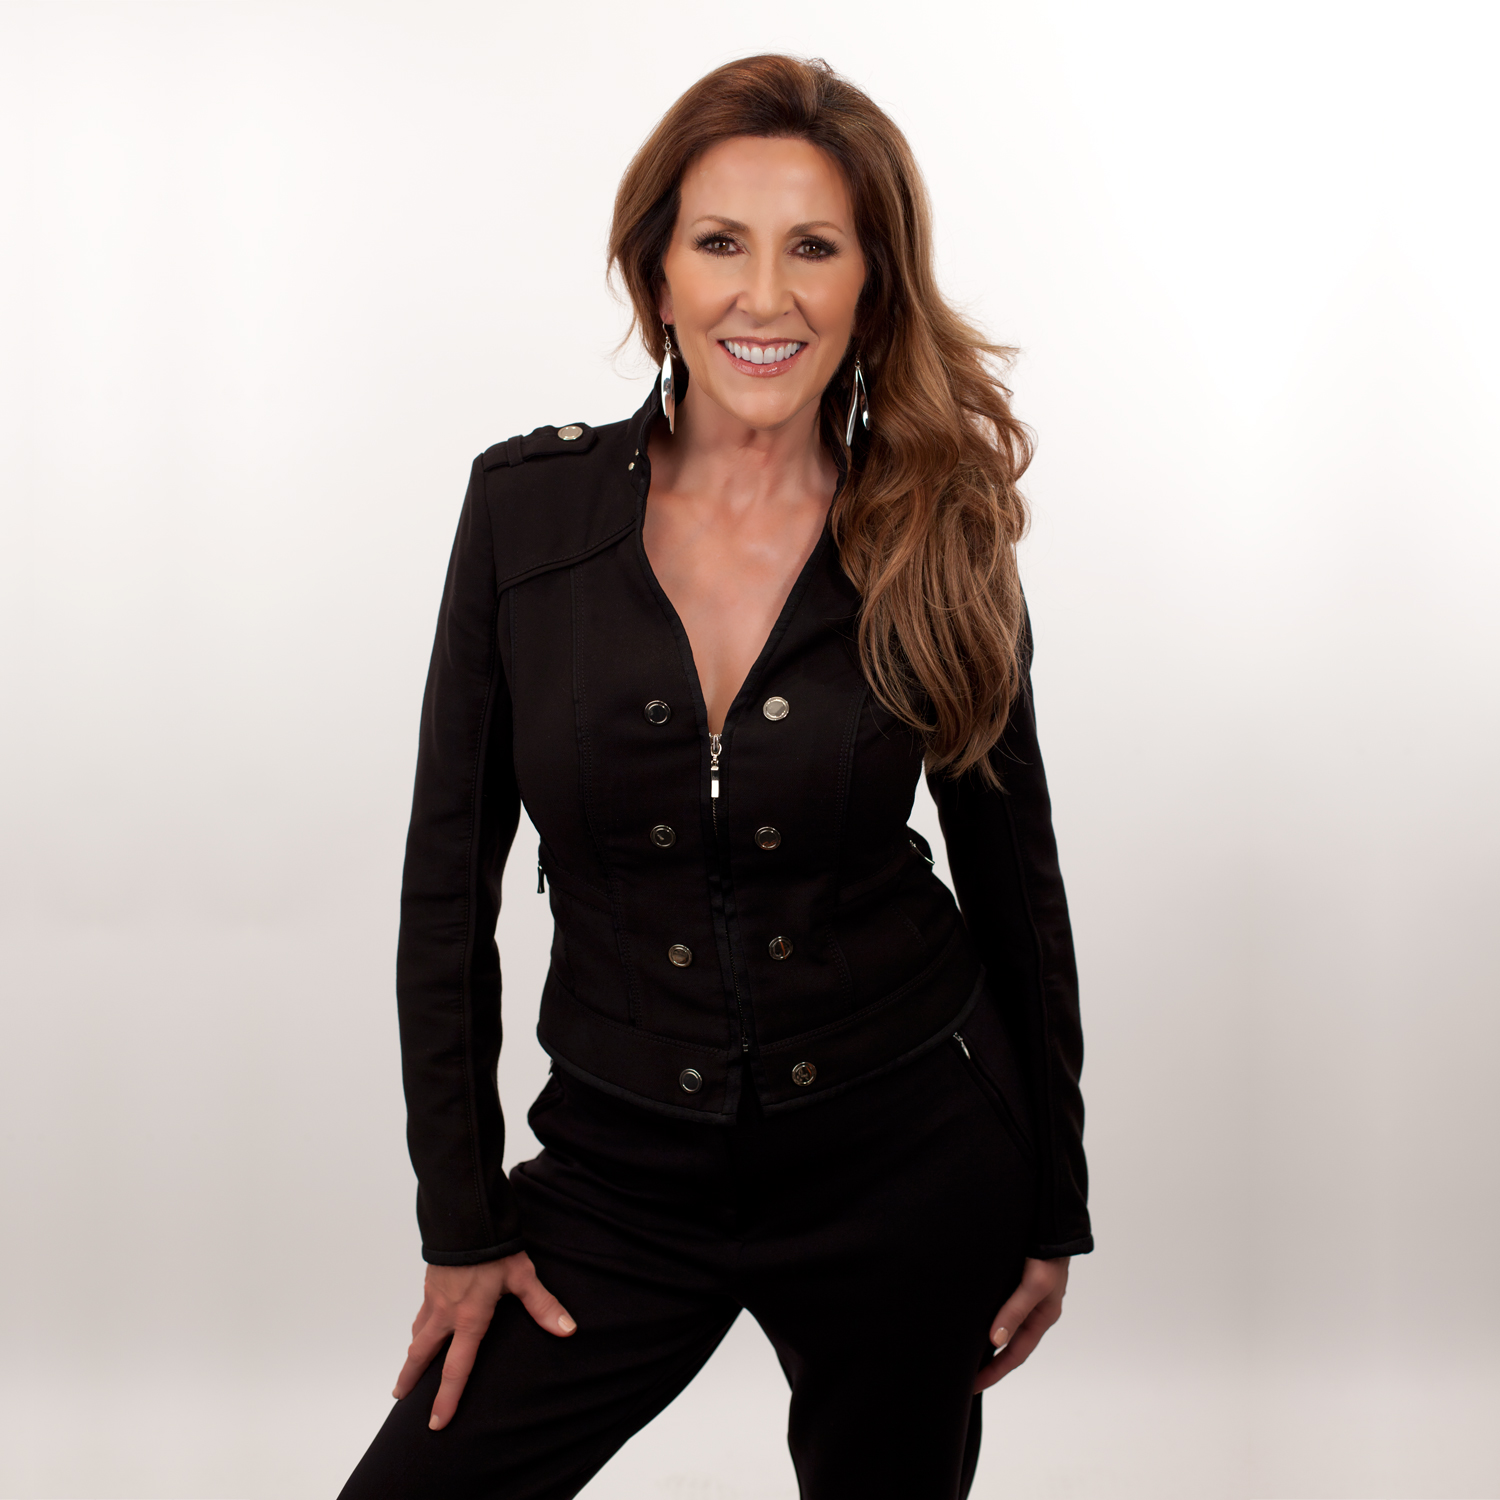 Eileen Krause - Pop Singer Trained by Vocal Coach Thomas Appell at APPELL VOICE STUDIO in Orange County, CA